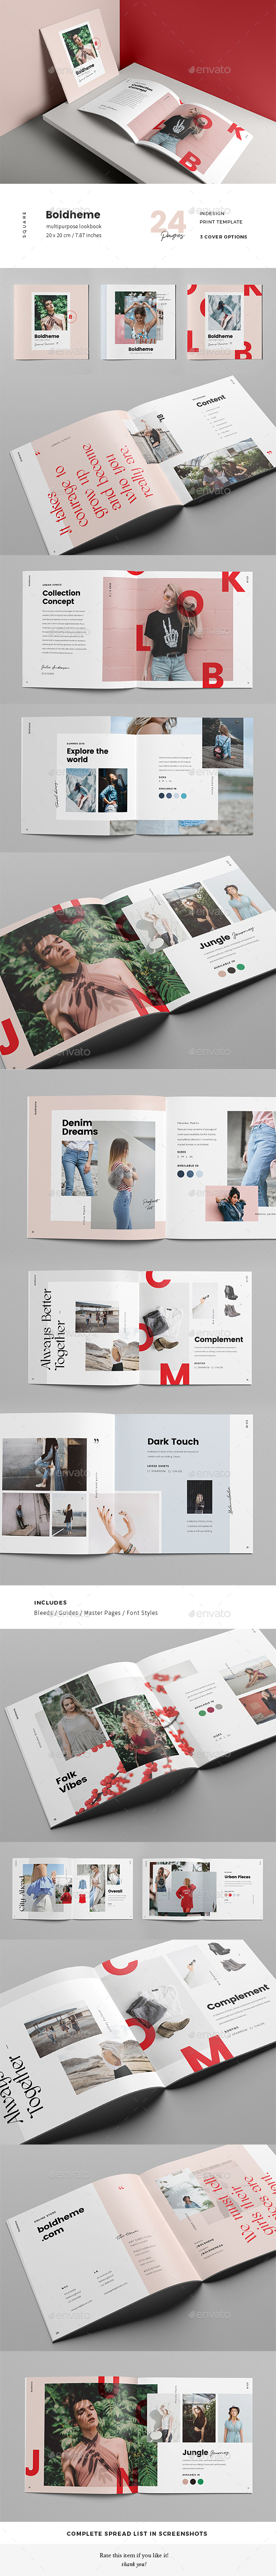 Boldheme / Modern Lookbook & Catalog - Catalogs Brochures